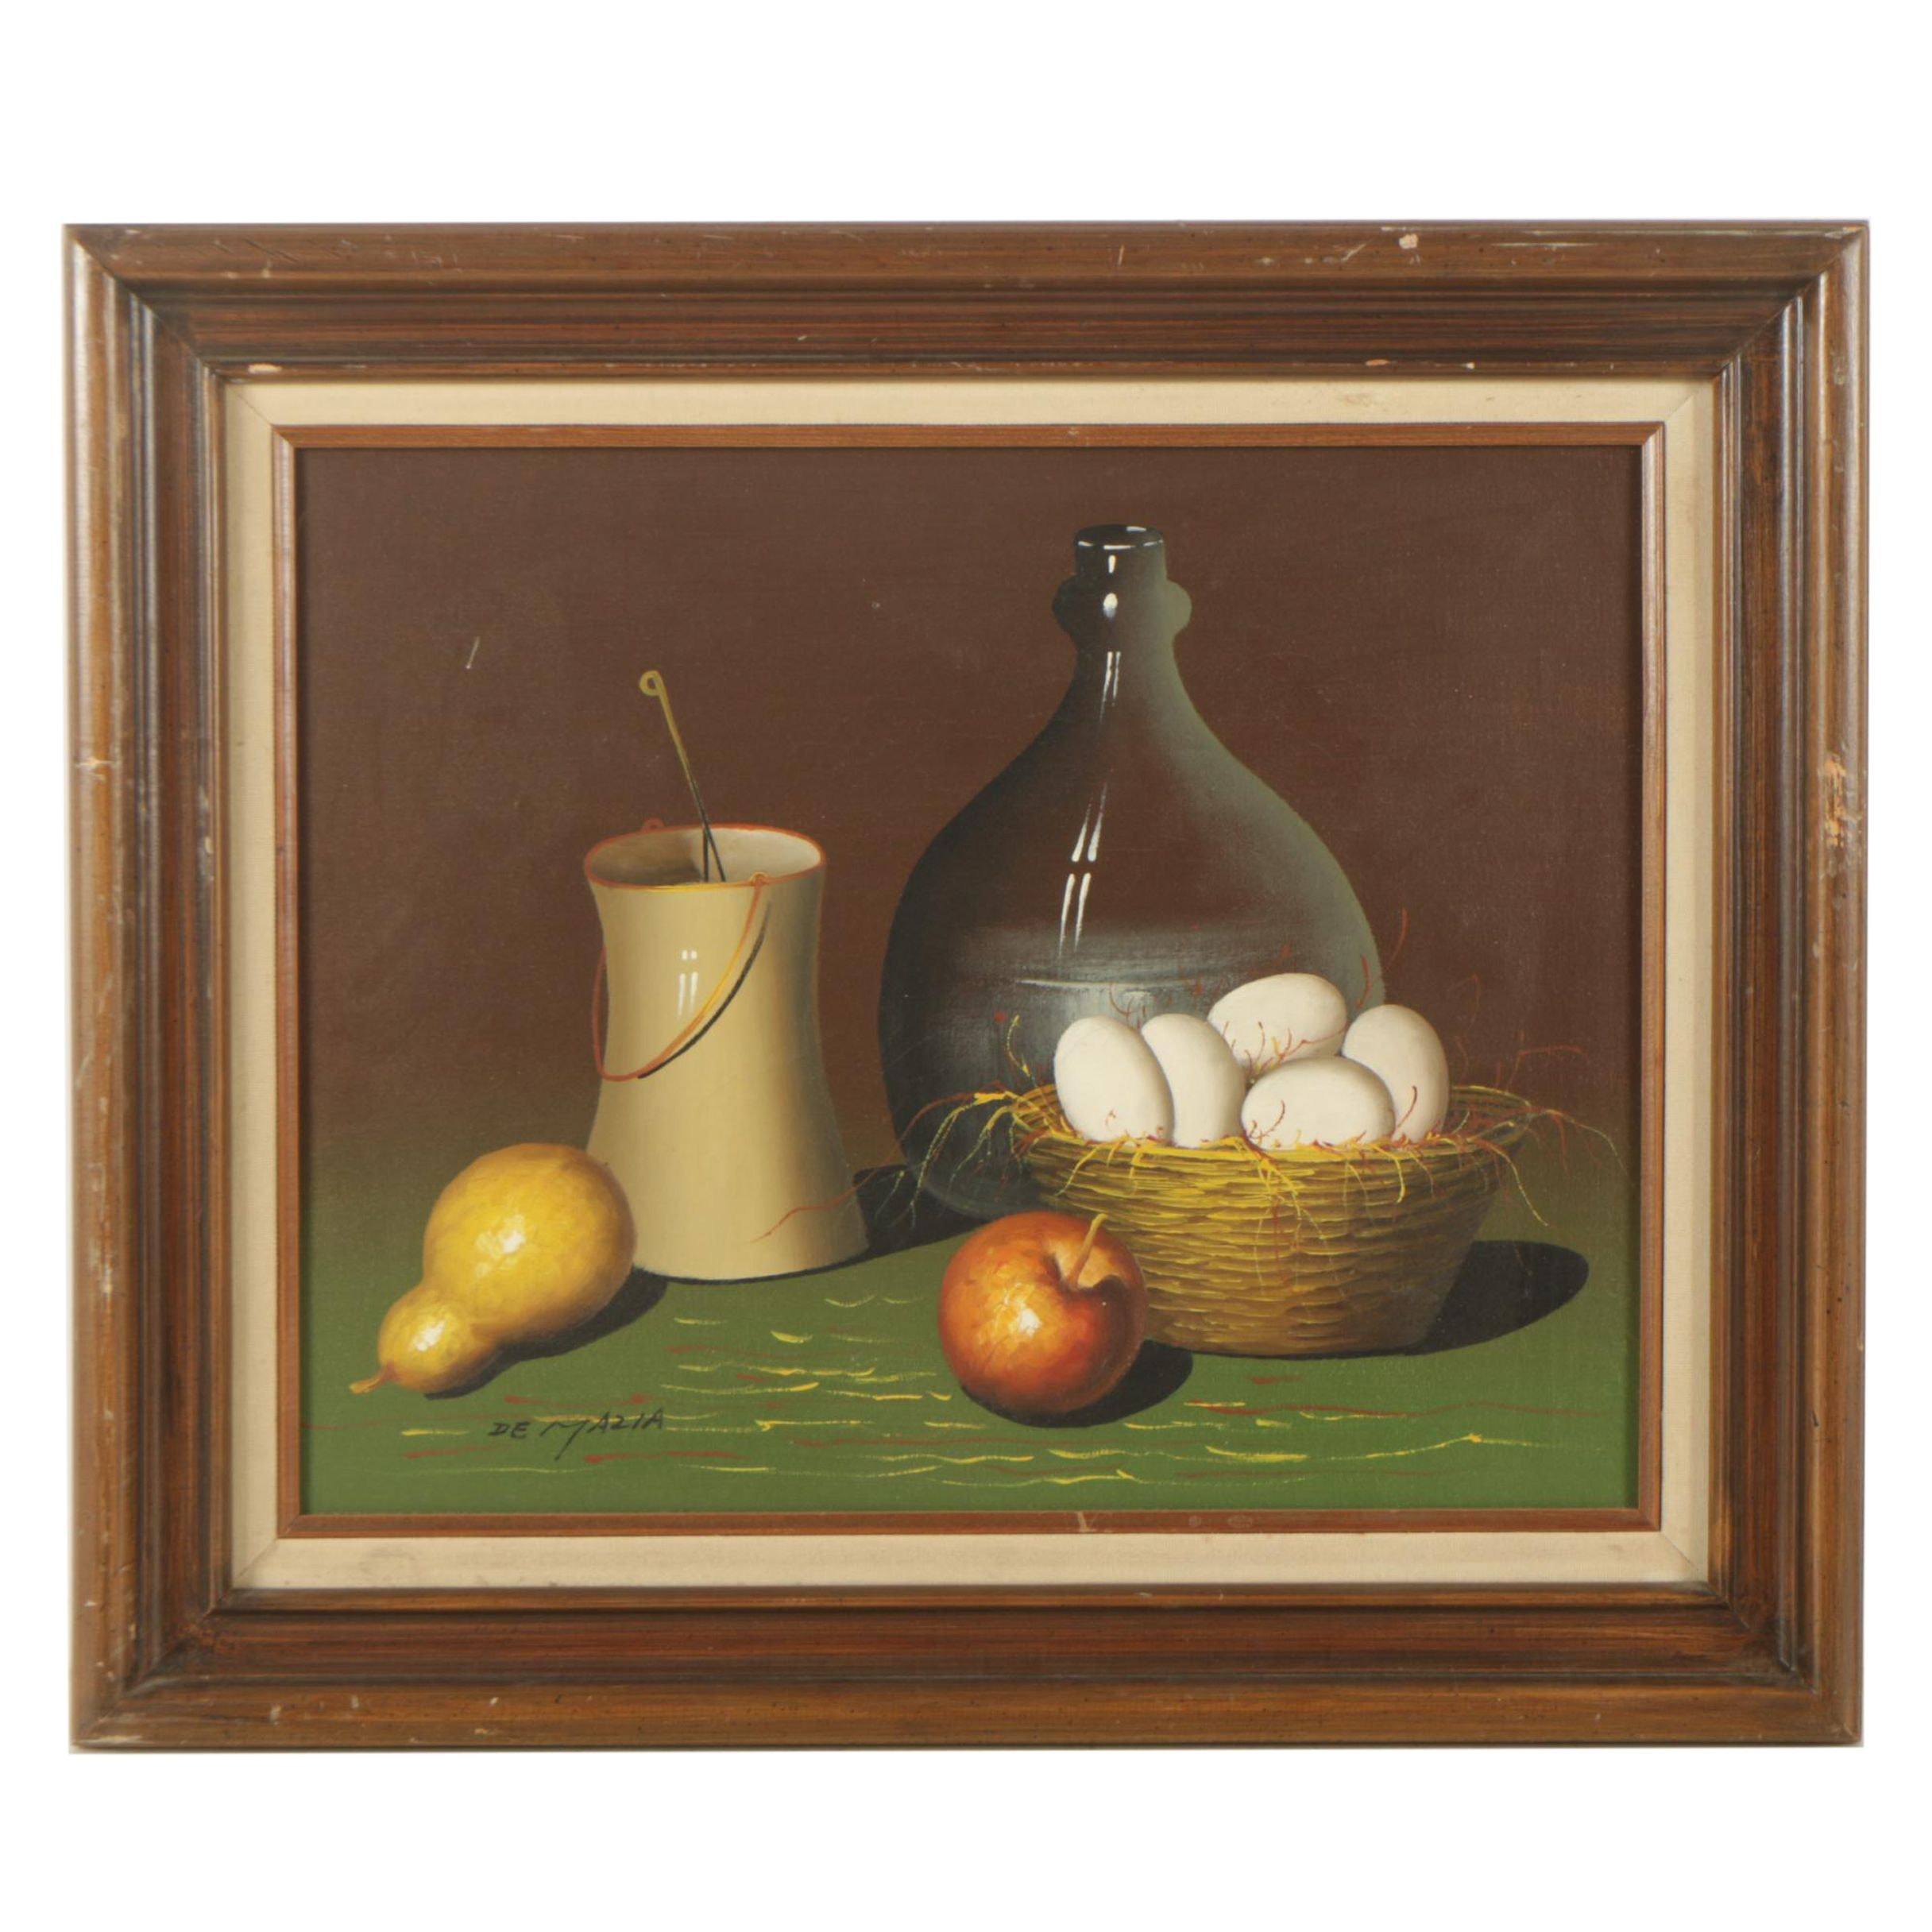 Violet De Mazia Oil Painting of a Still Life